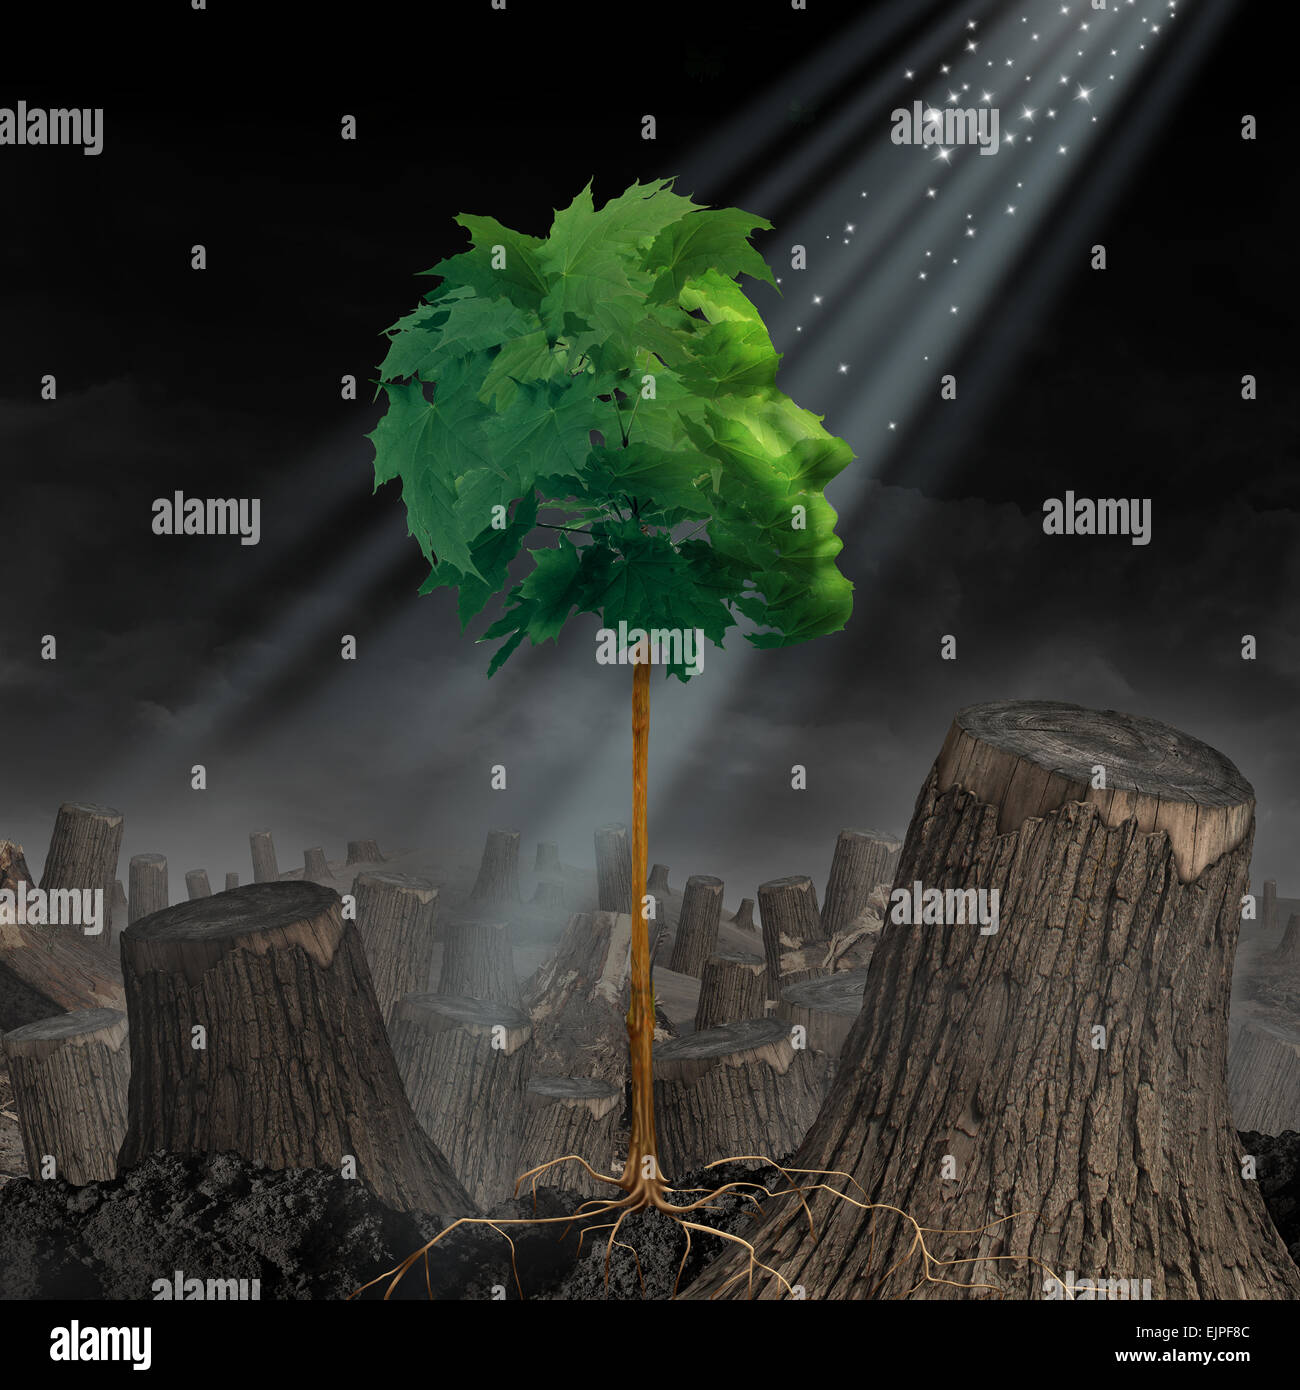 Renewal and hope Life and recovery concept as a green leaf tree shaped as a human head growing out of landscape - Stock Image